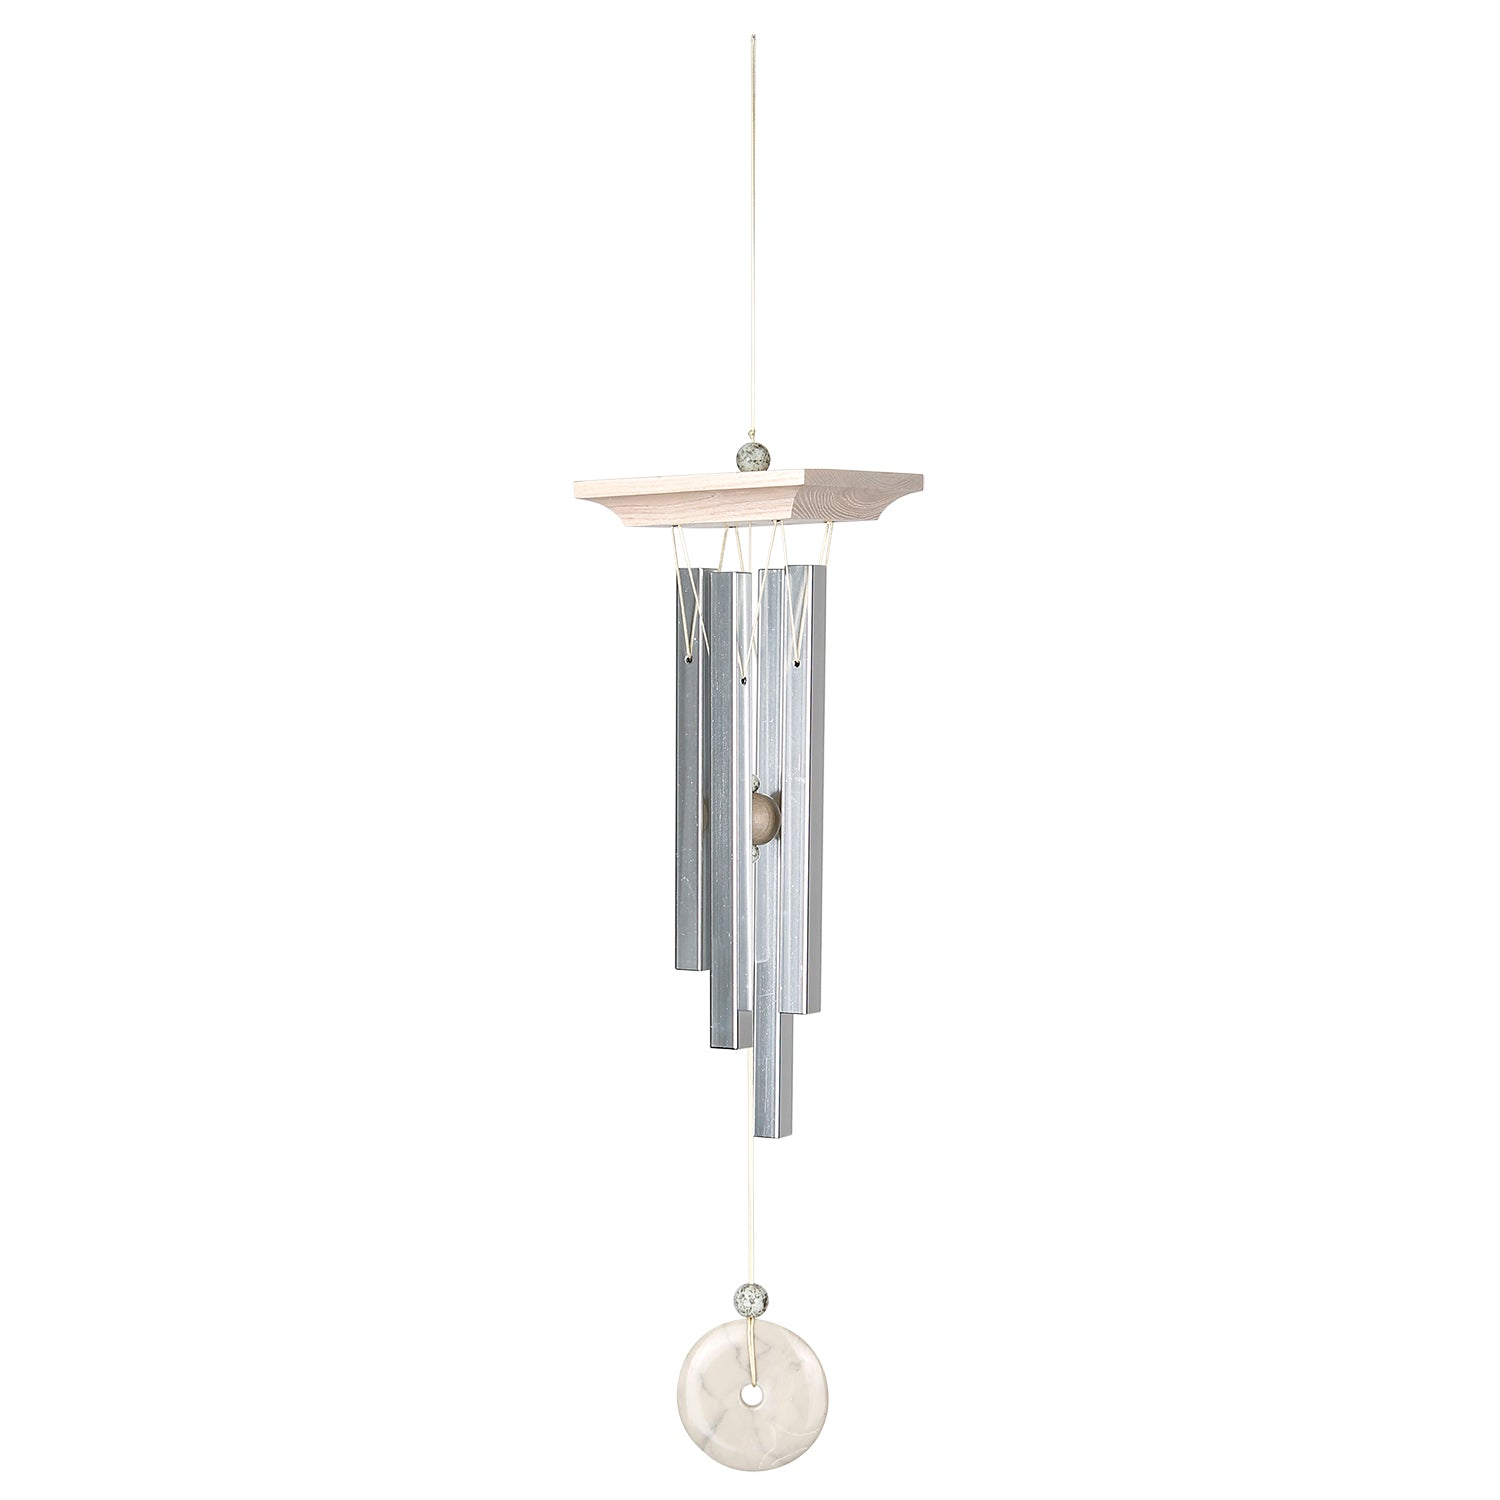 White Marble Chime full product image